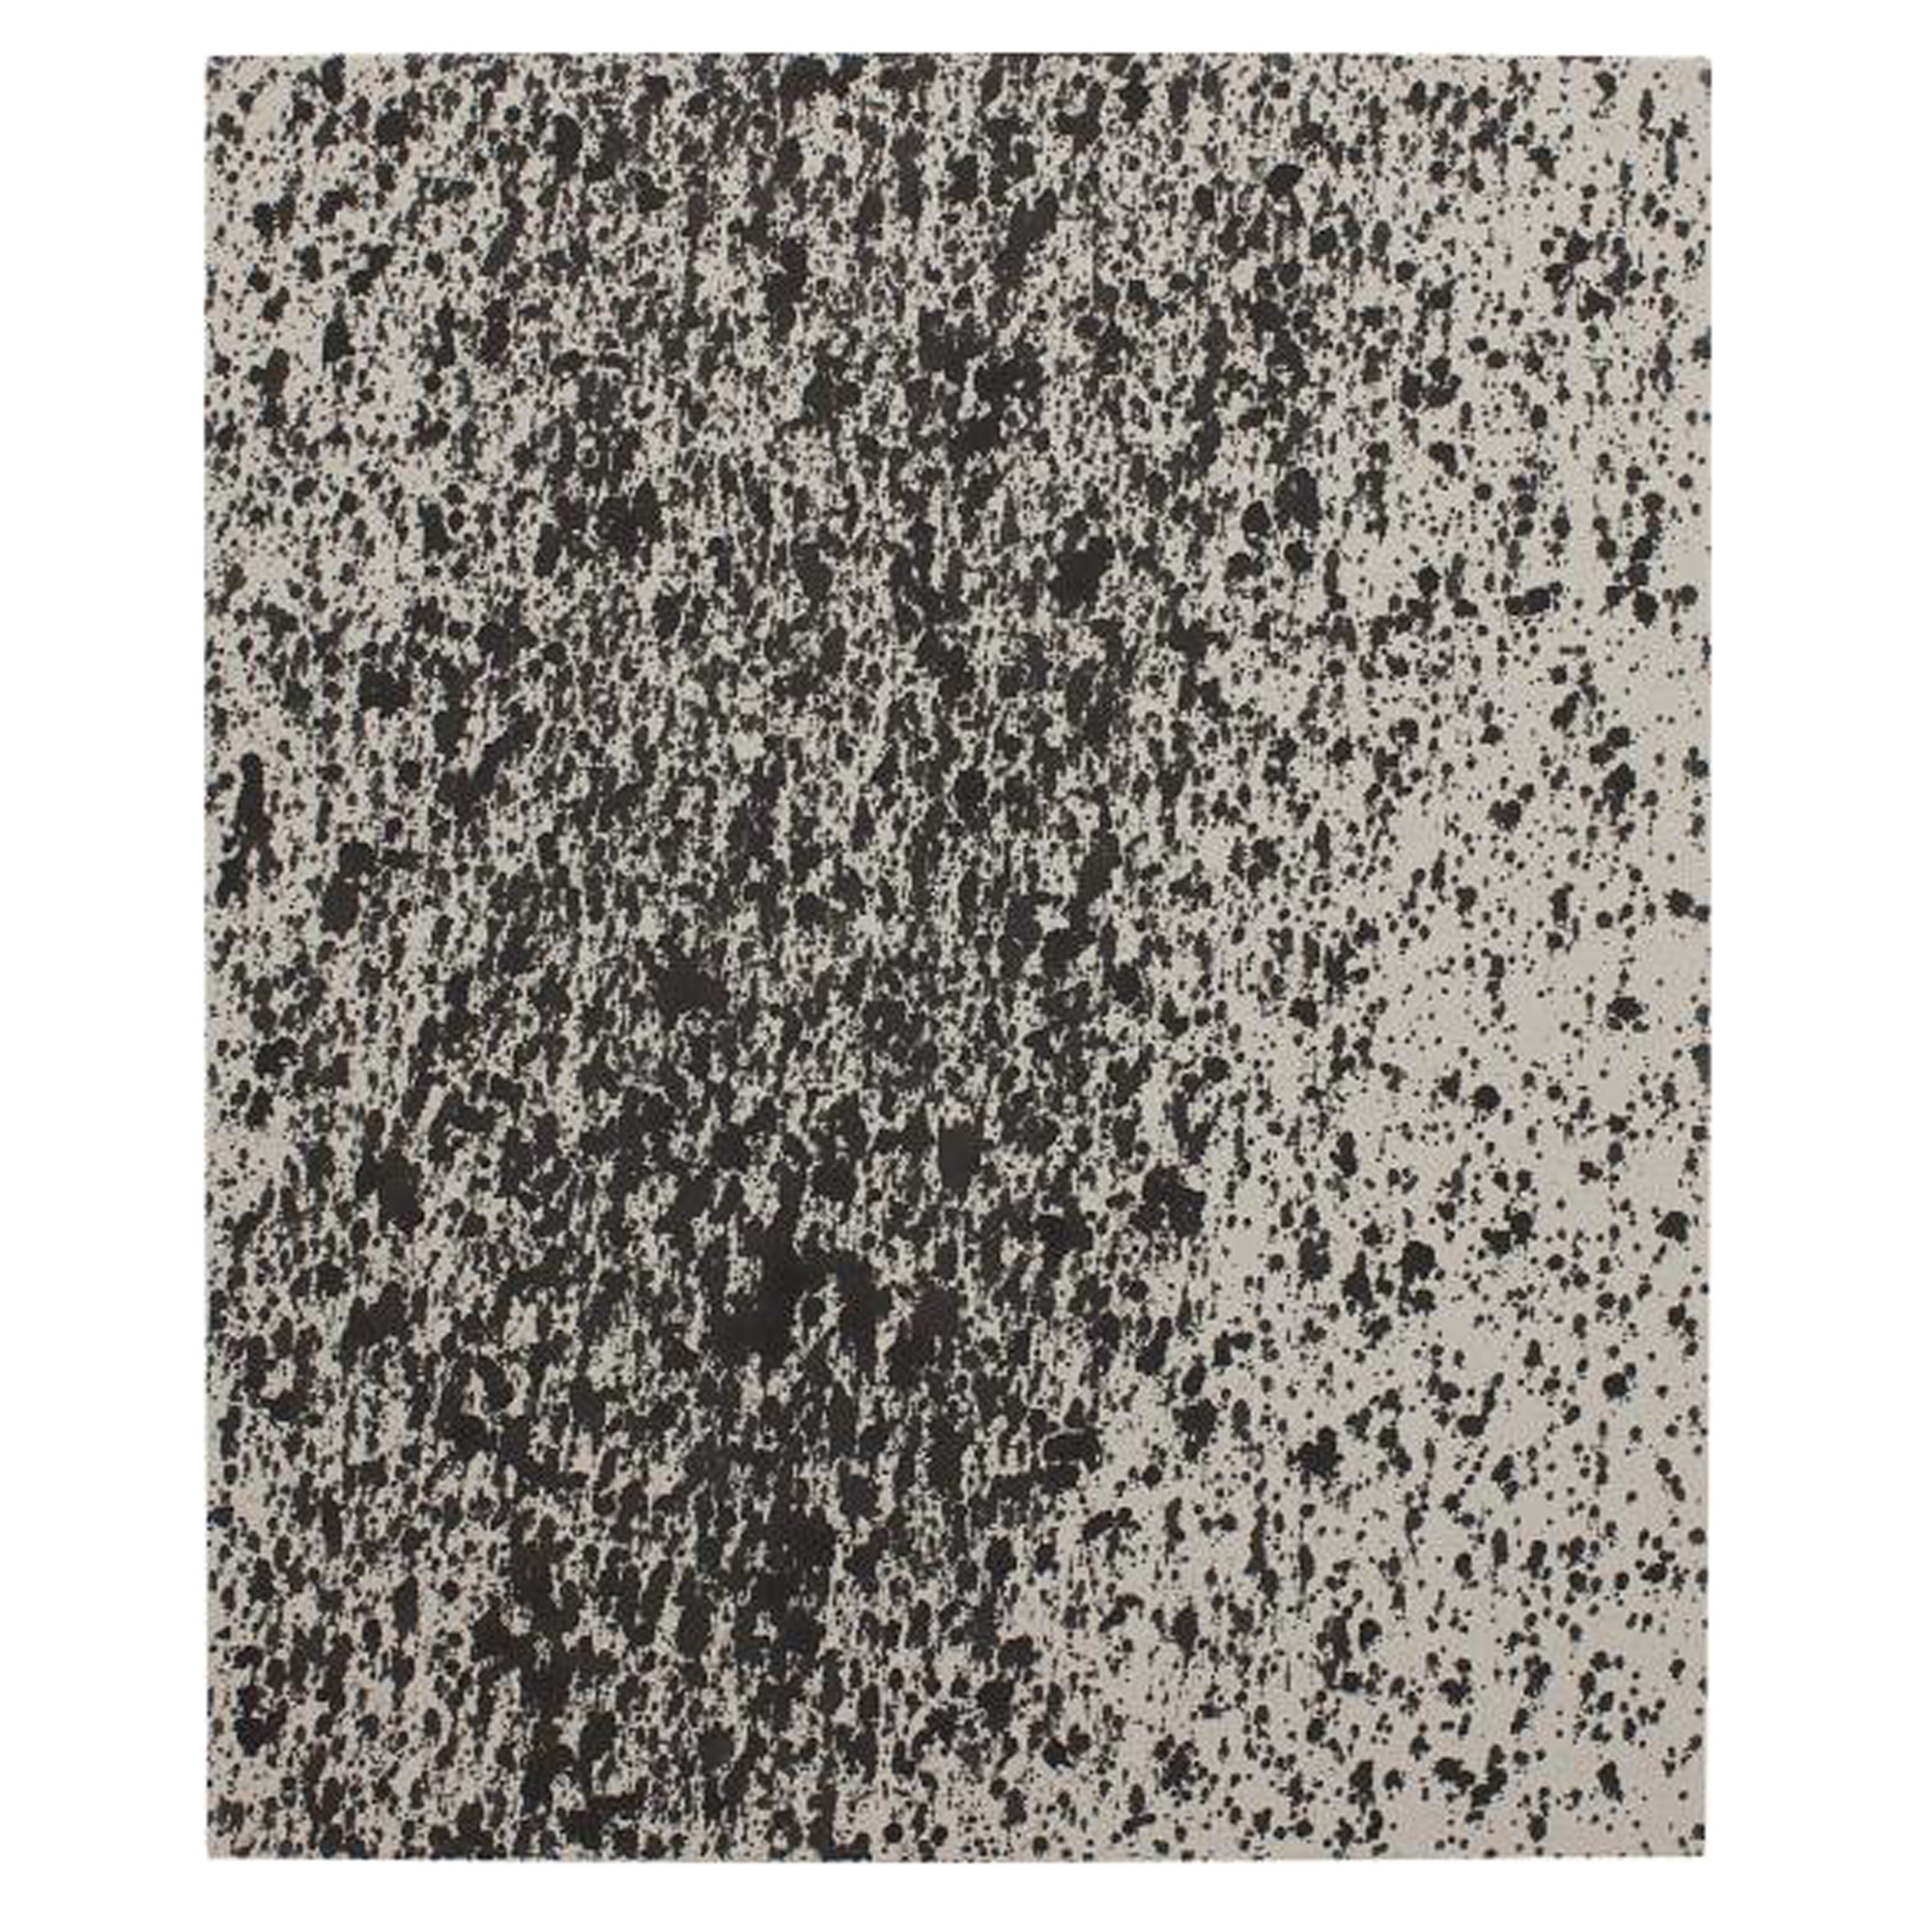 LUCIEN SMITH Untitled (Black 7), 2012 acrylic on unprimed canvas.jpg